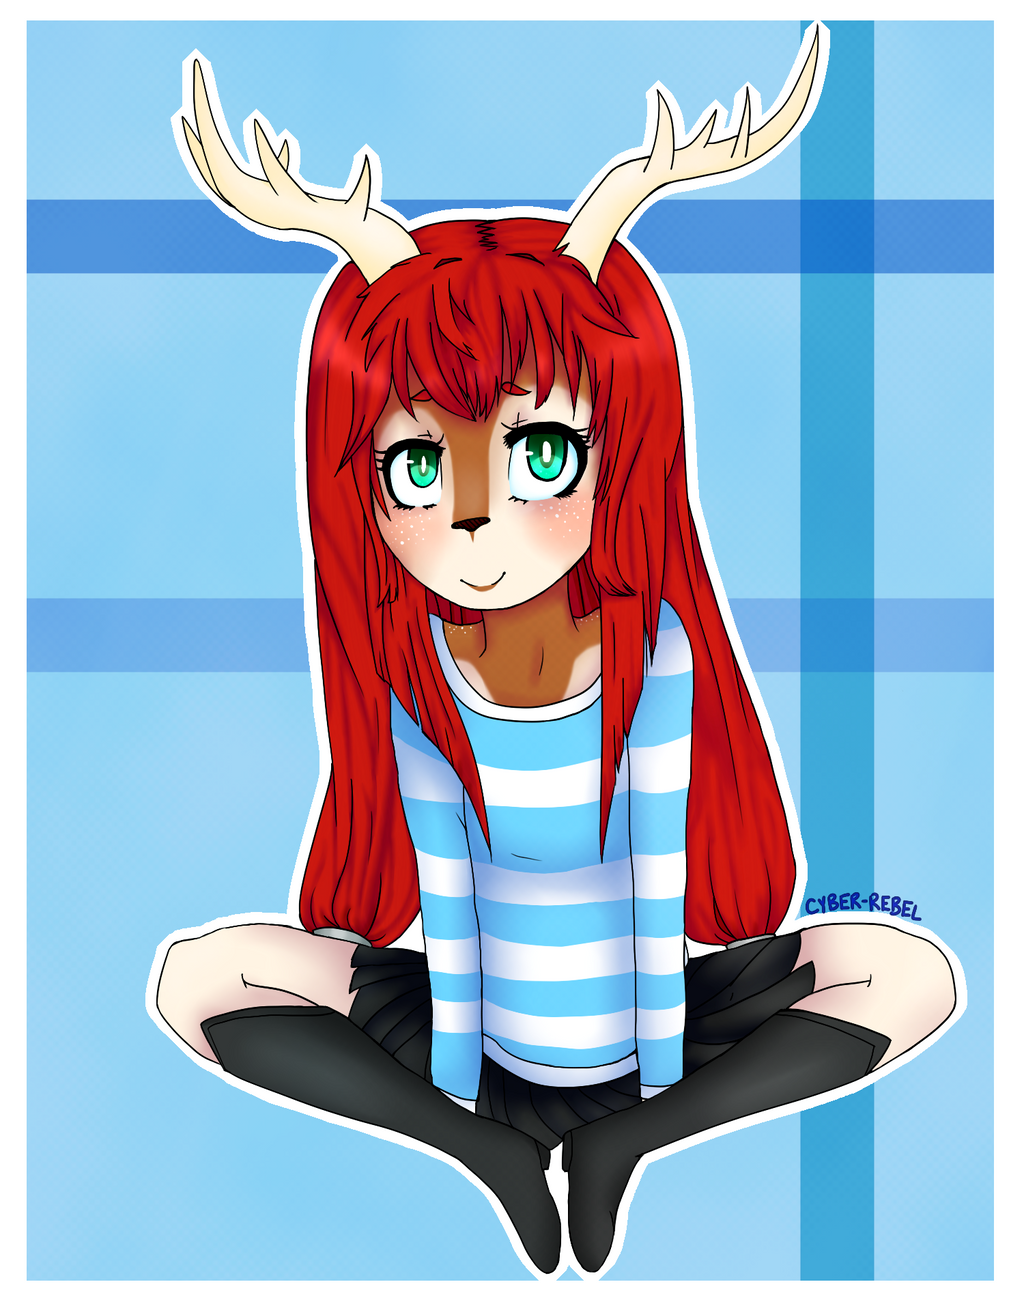 Wittle Faun Girlie by CYBER-REBEL